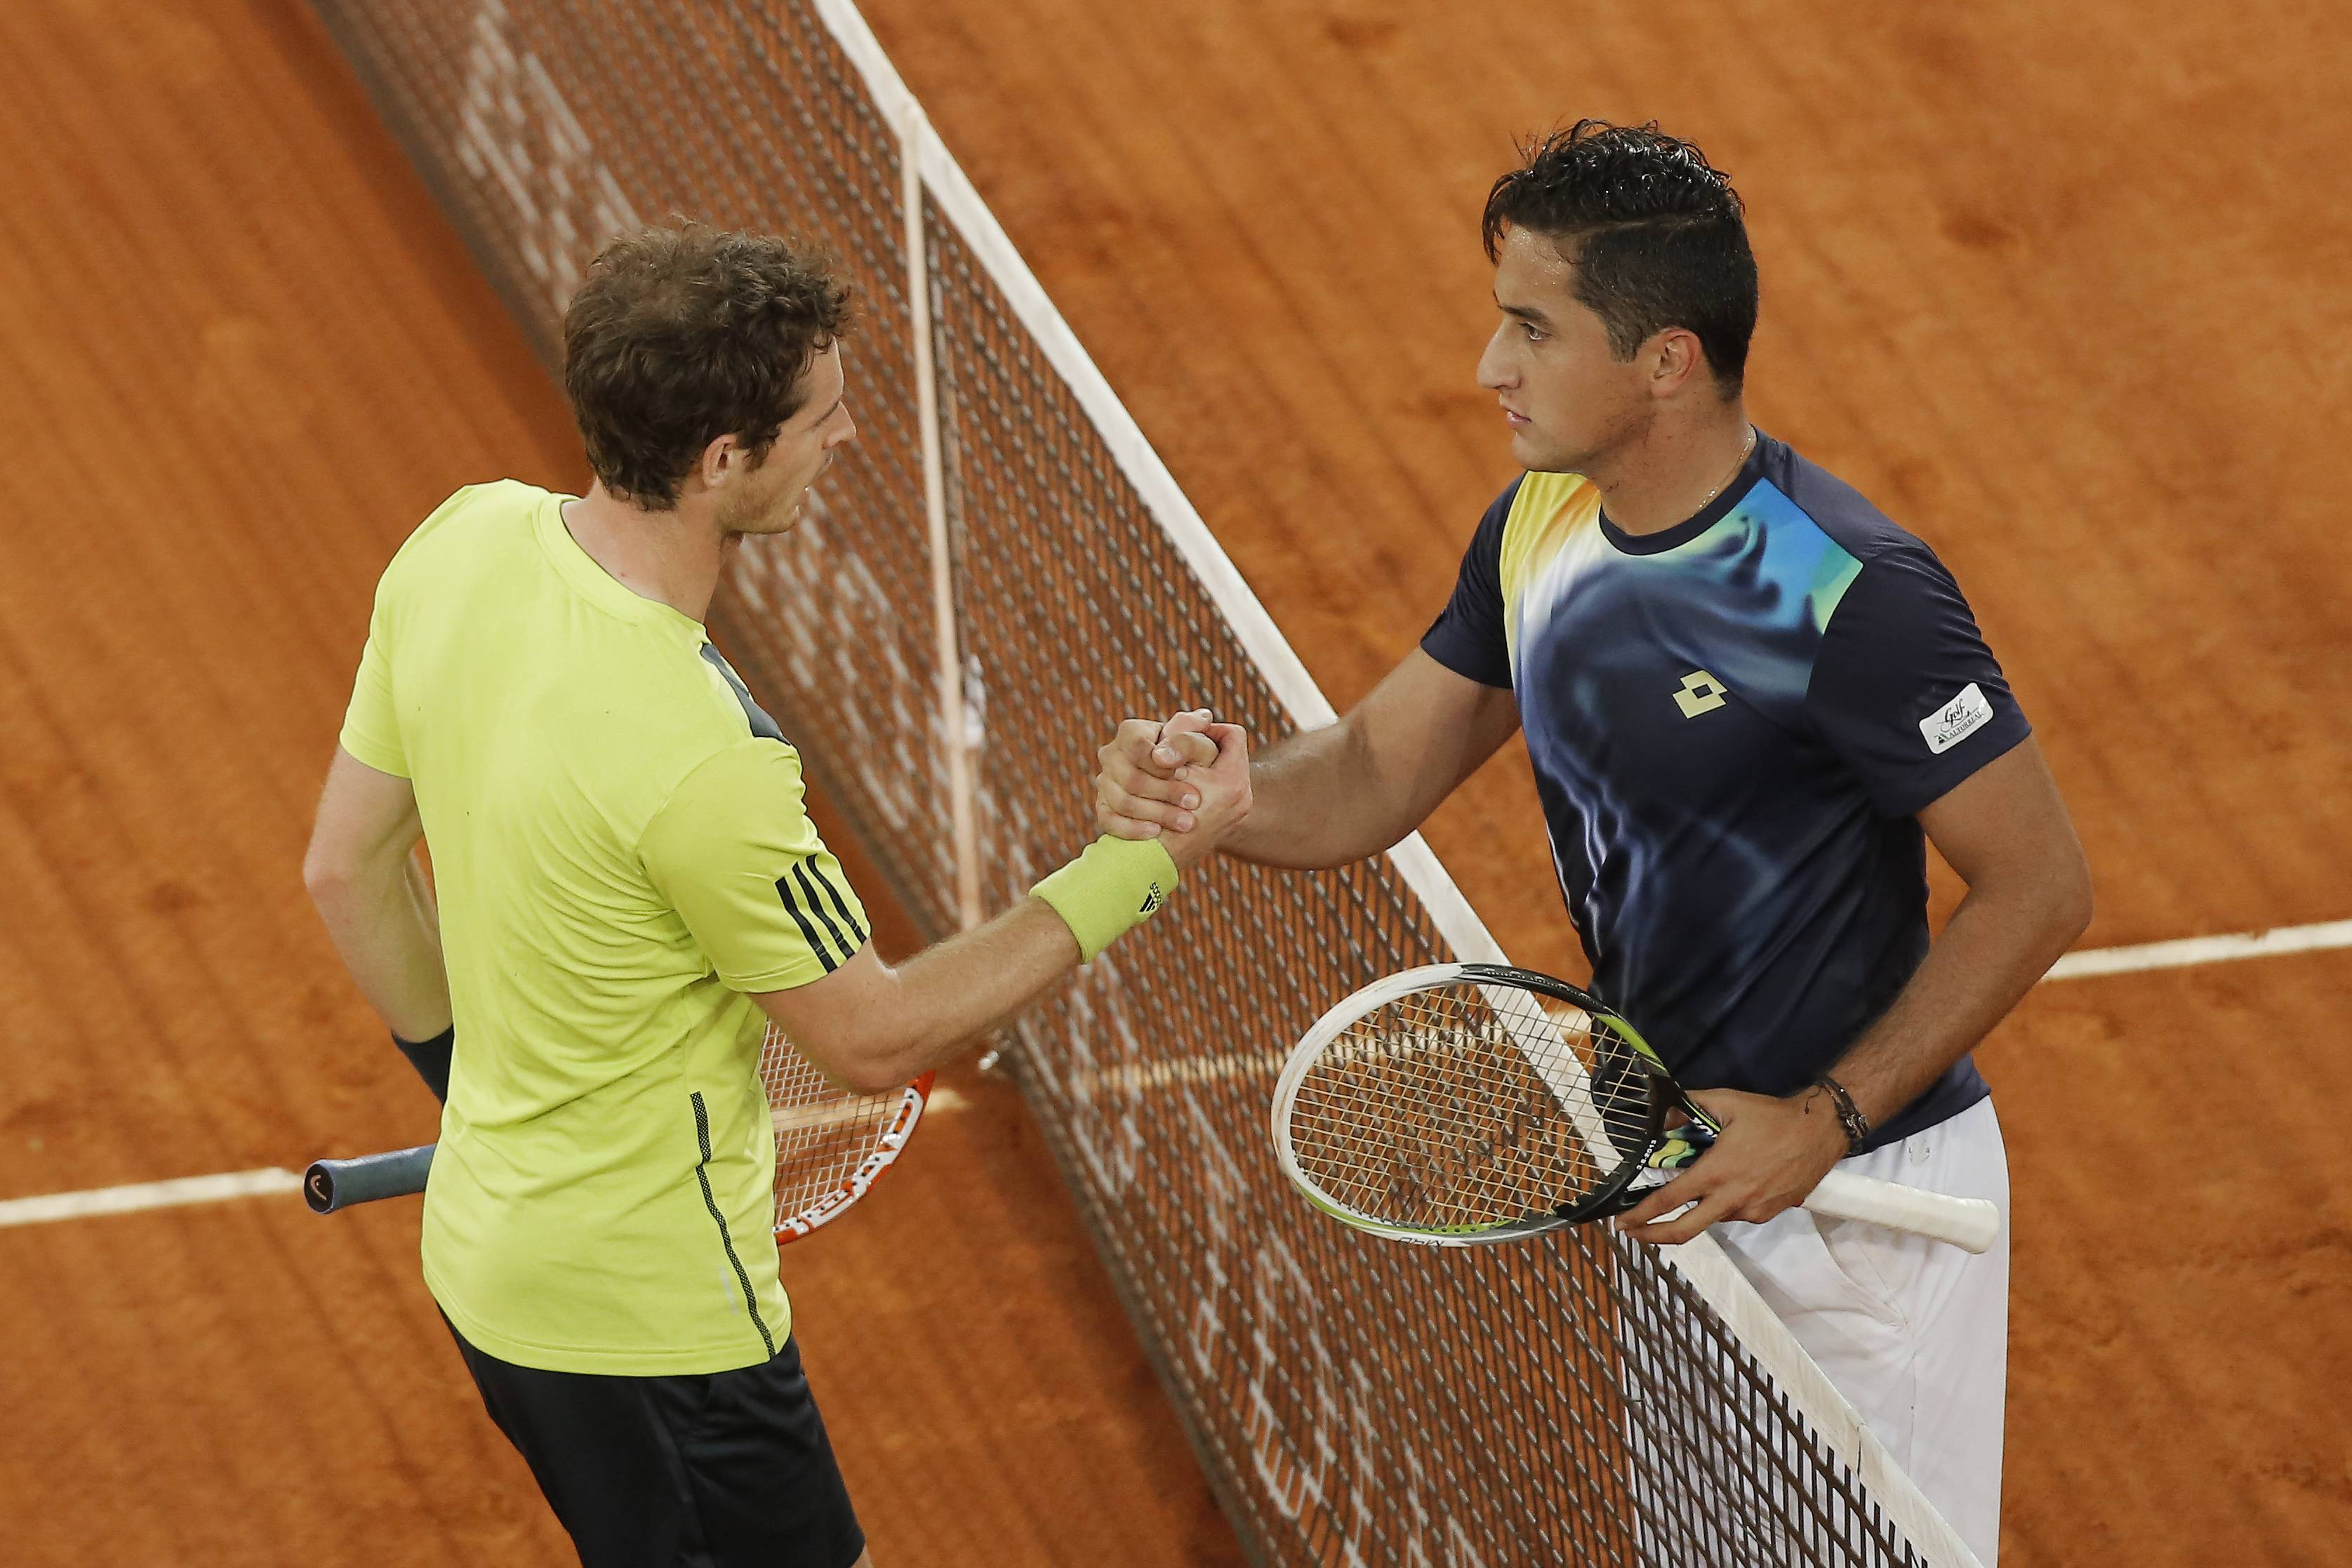 Nicolas Almagro from Spain, right, shakes hands with Britain's Andy Murray, left, after a Madrid Open tennis tournament match in Madrid, Spain, Wednesday, May 7, 2014.